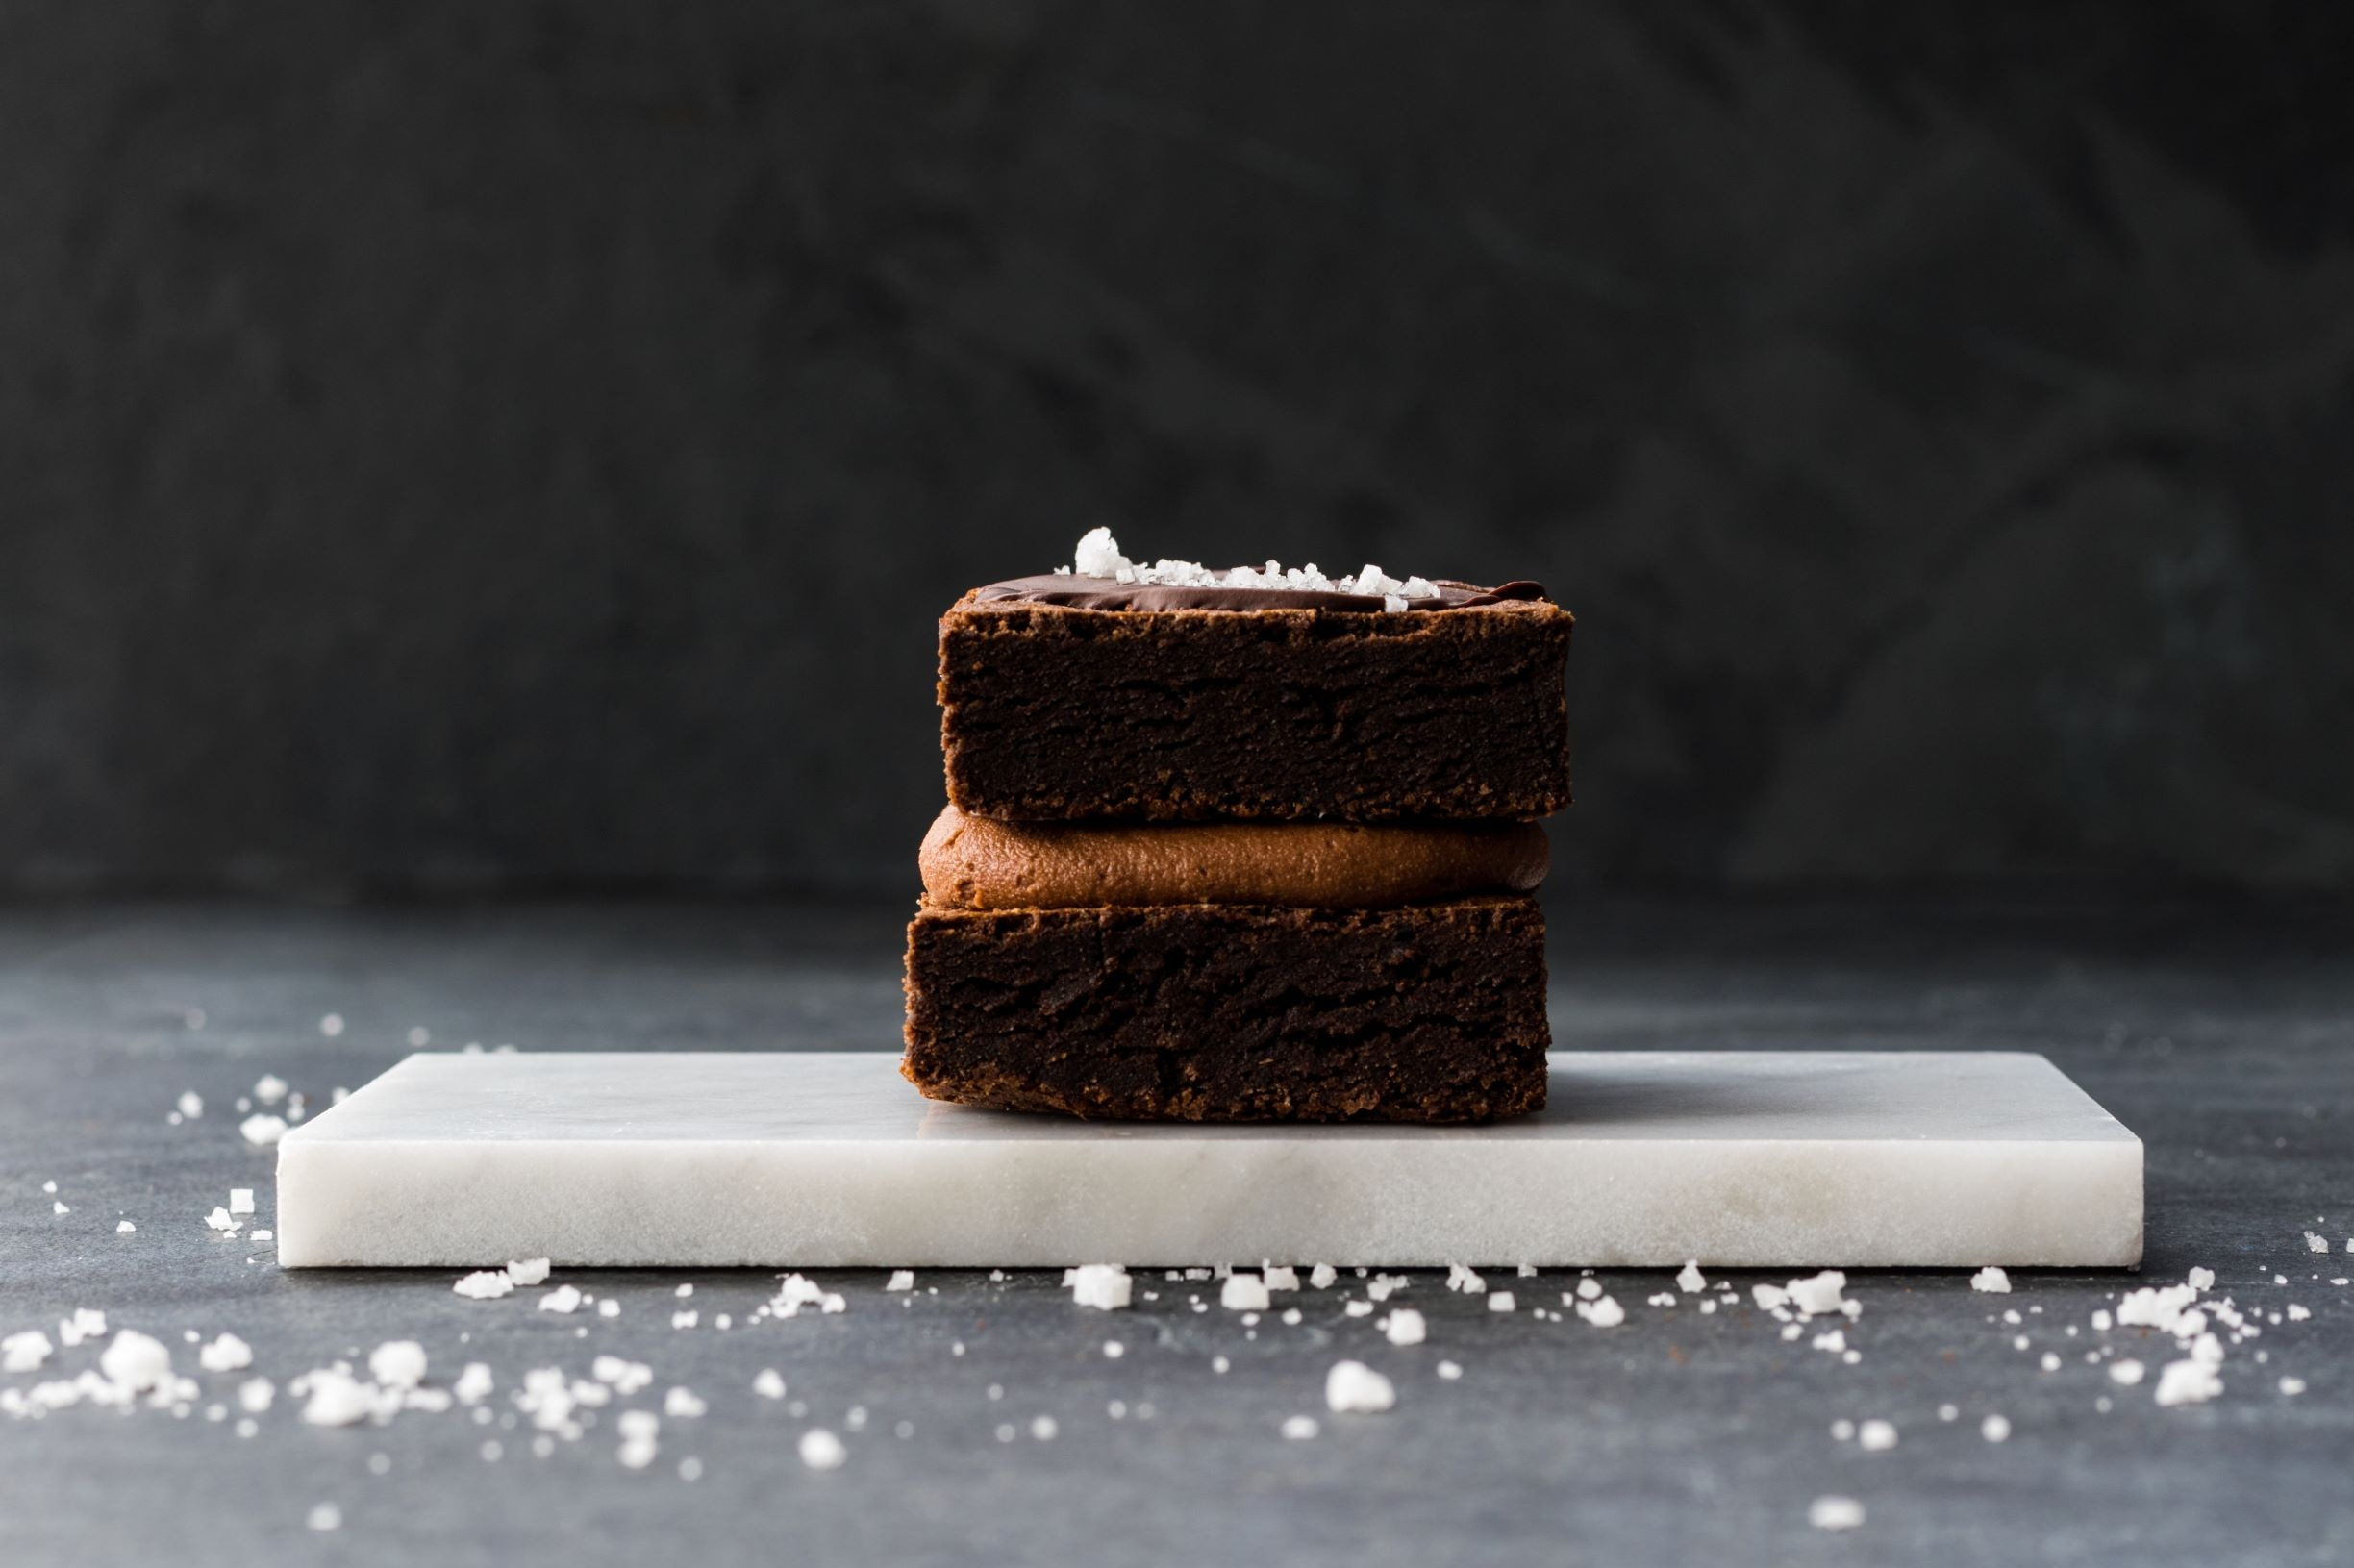 FUDGE! - CLASSIC FUDGE BROWNIE WITH SEMI-SWEET CHOCOLATE AND COARSE SEA SALT